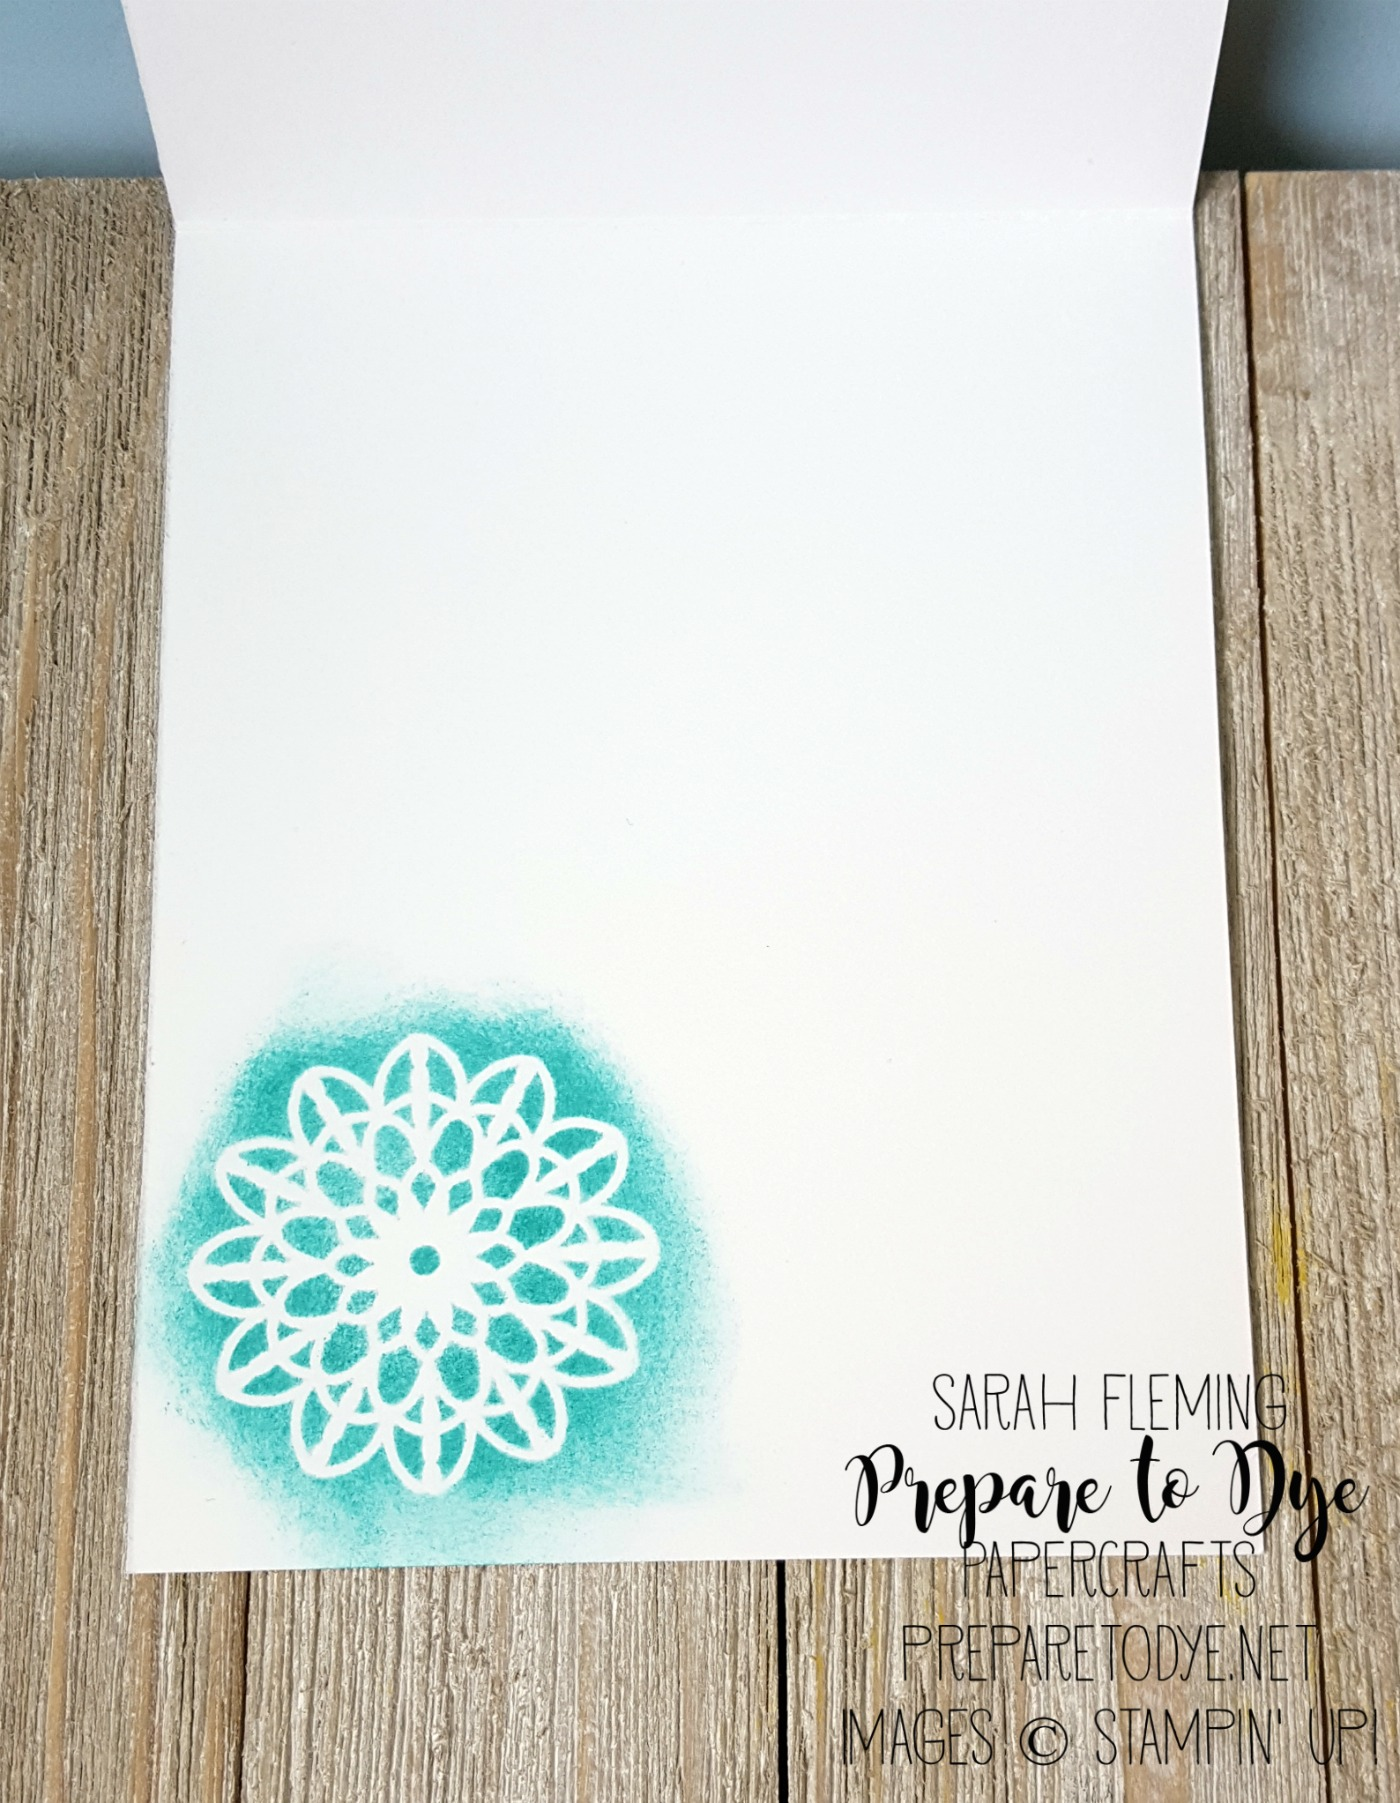 Stampin' Up! Lace Doilies - Kylie Bertucci's International Blog Highlight - Sarah Fleming - Prepare to Dye Papercrafts